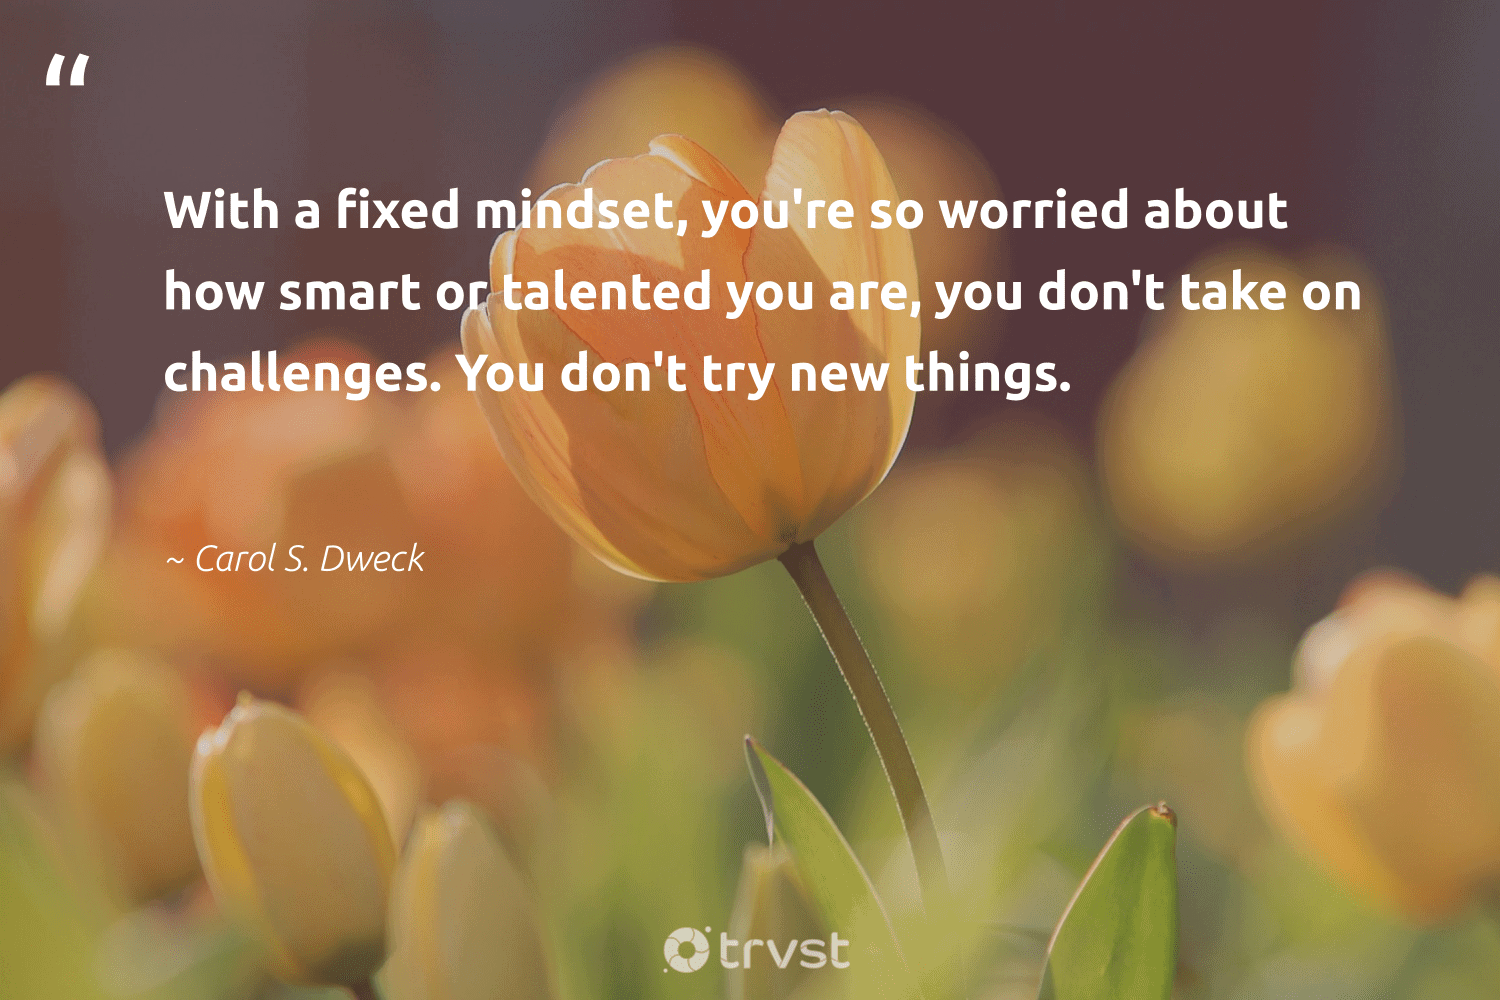 """""""With a fixed mindset, you're so worried about how smart or talented you are, you don't take on challenges. You don't try new things.""""  - Carol S. Dweck #trvst #quotes #mindset #mindfulness #health #changemakers #changetheworld #creativemindset #togetherwecan #begreat #ecoconscious #meditate"""